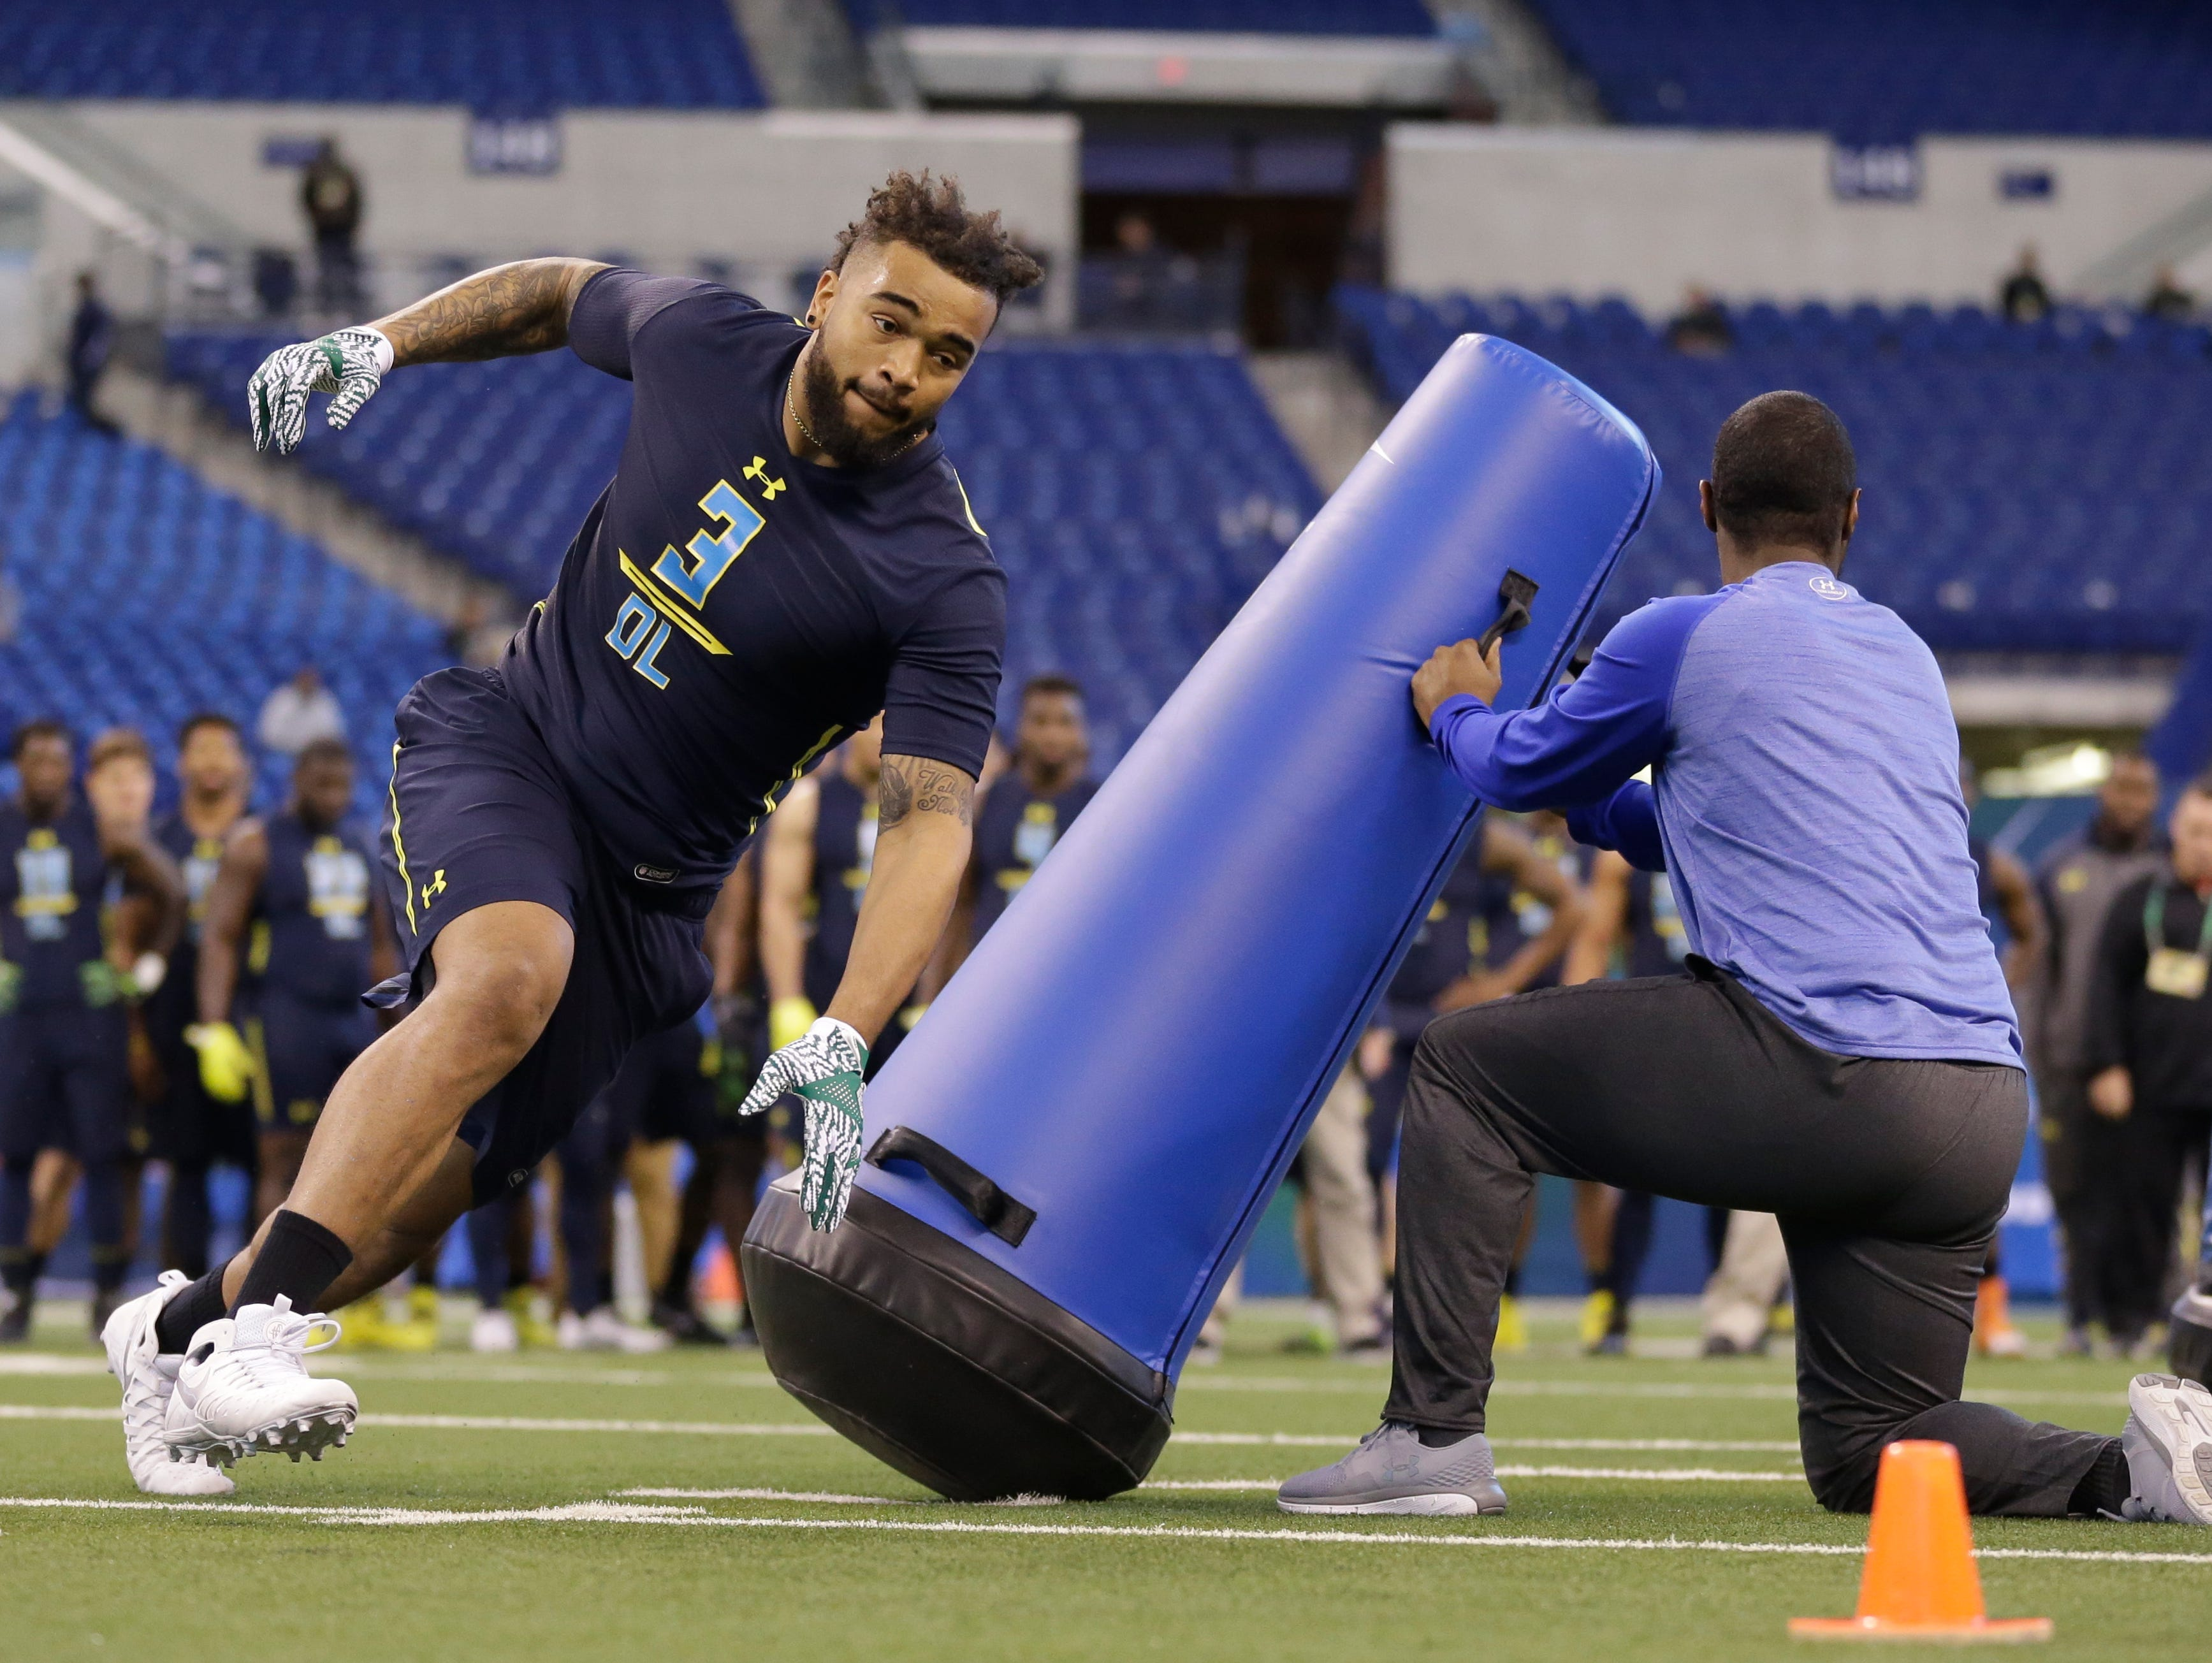 Tennessee defensive end Derek Barnett runs a drill at the NFL football scouting combine in Indianapolis, Sunday, March 5, 2017. (AP Photo/Michael Conroy)